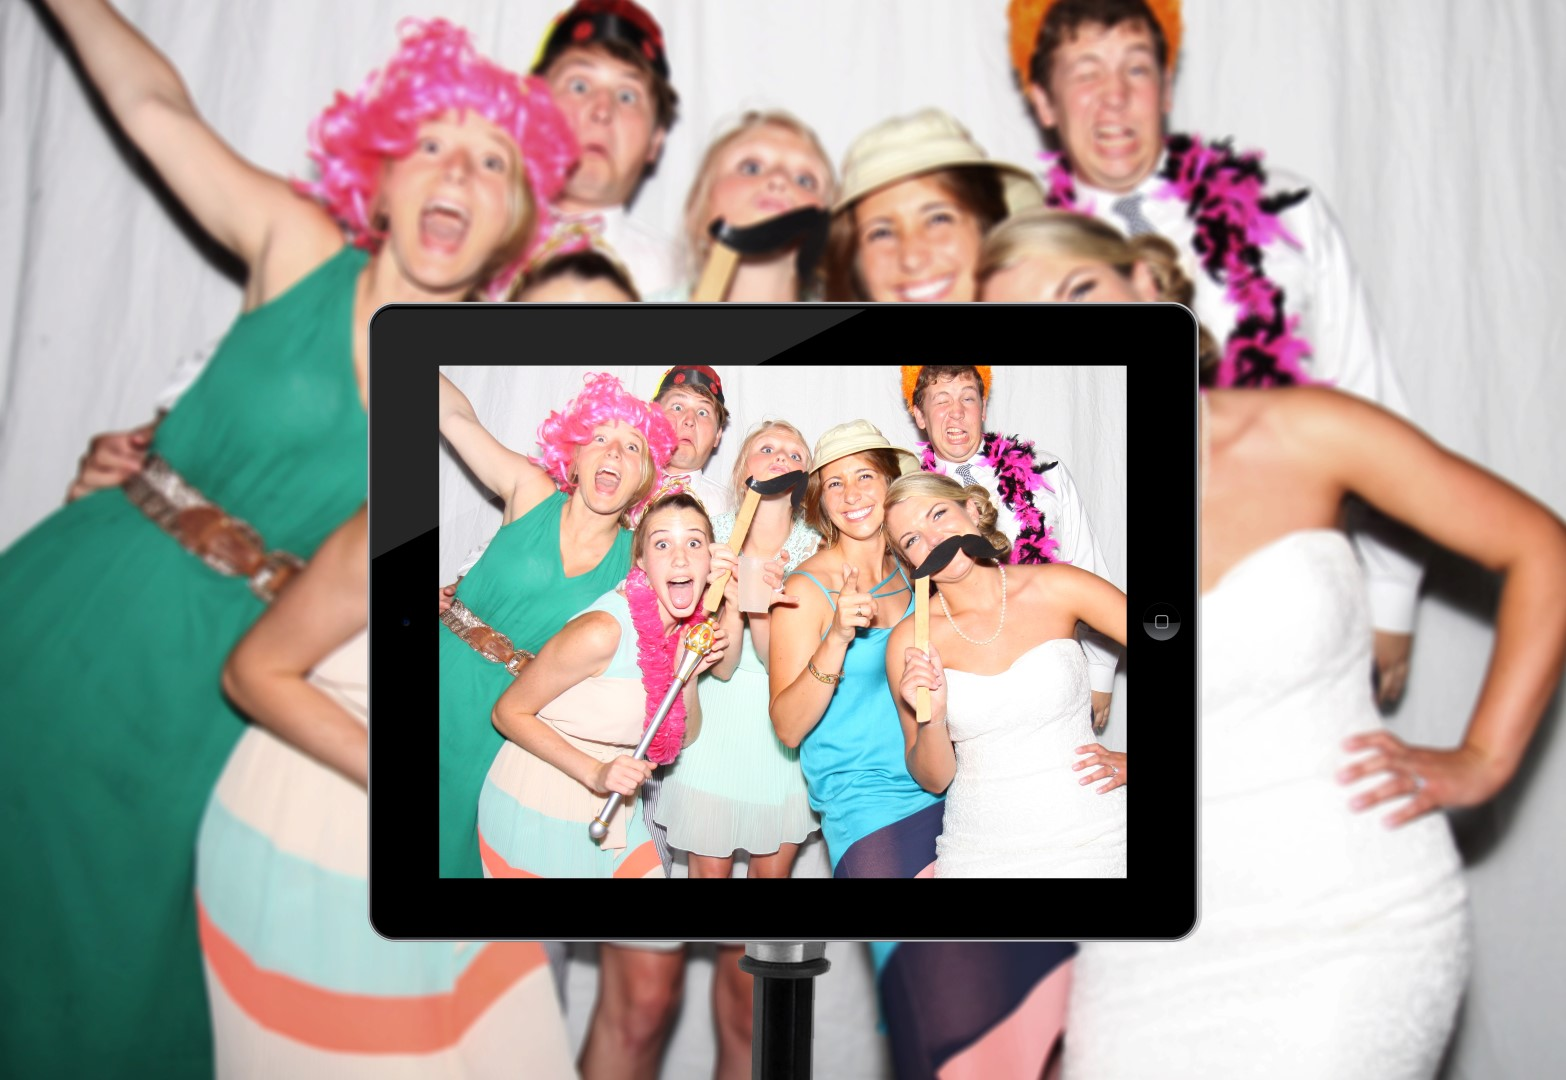 20 Photo Booth Poses to Use at a Naperville Wedding Reception